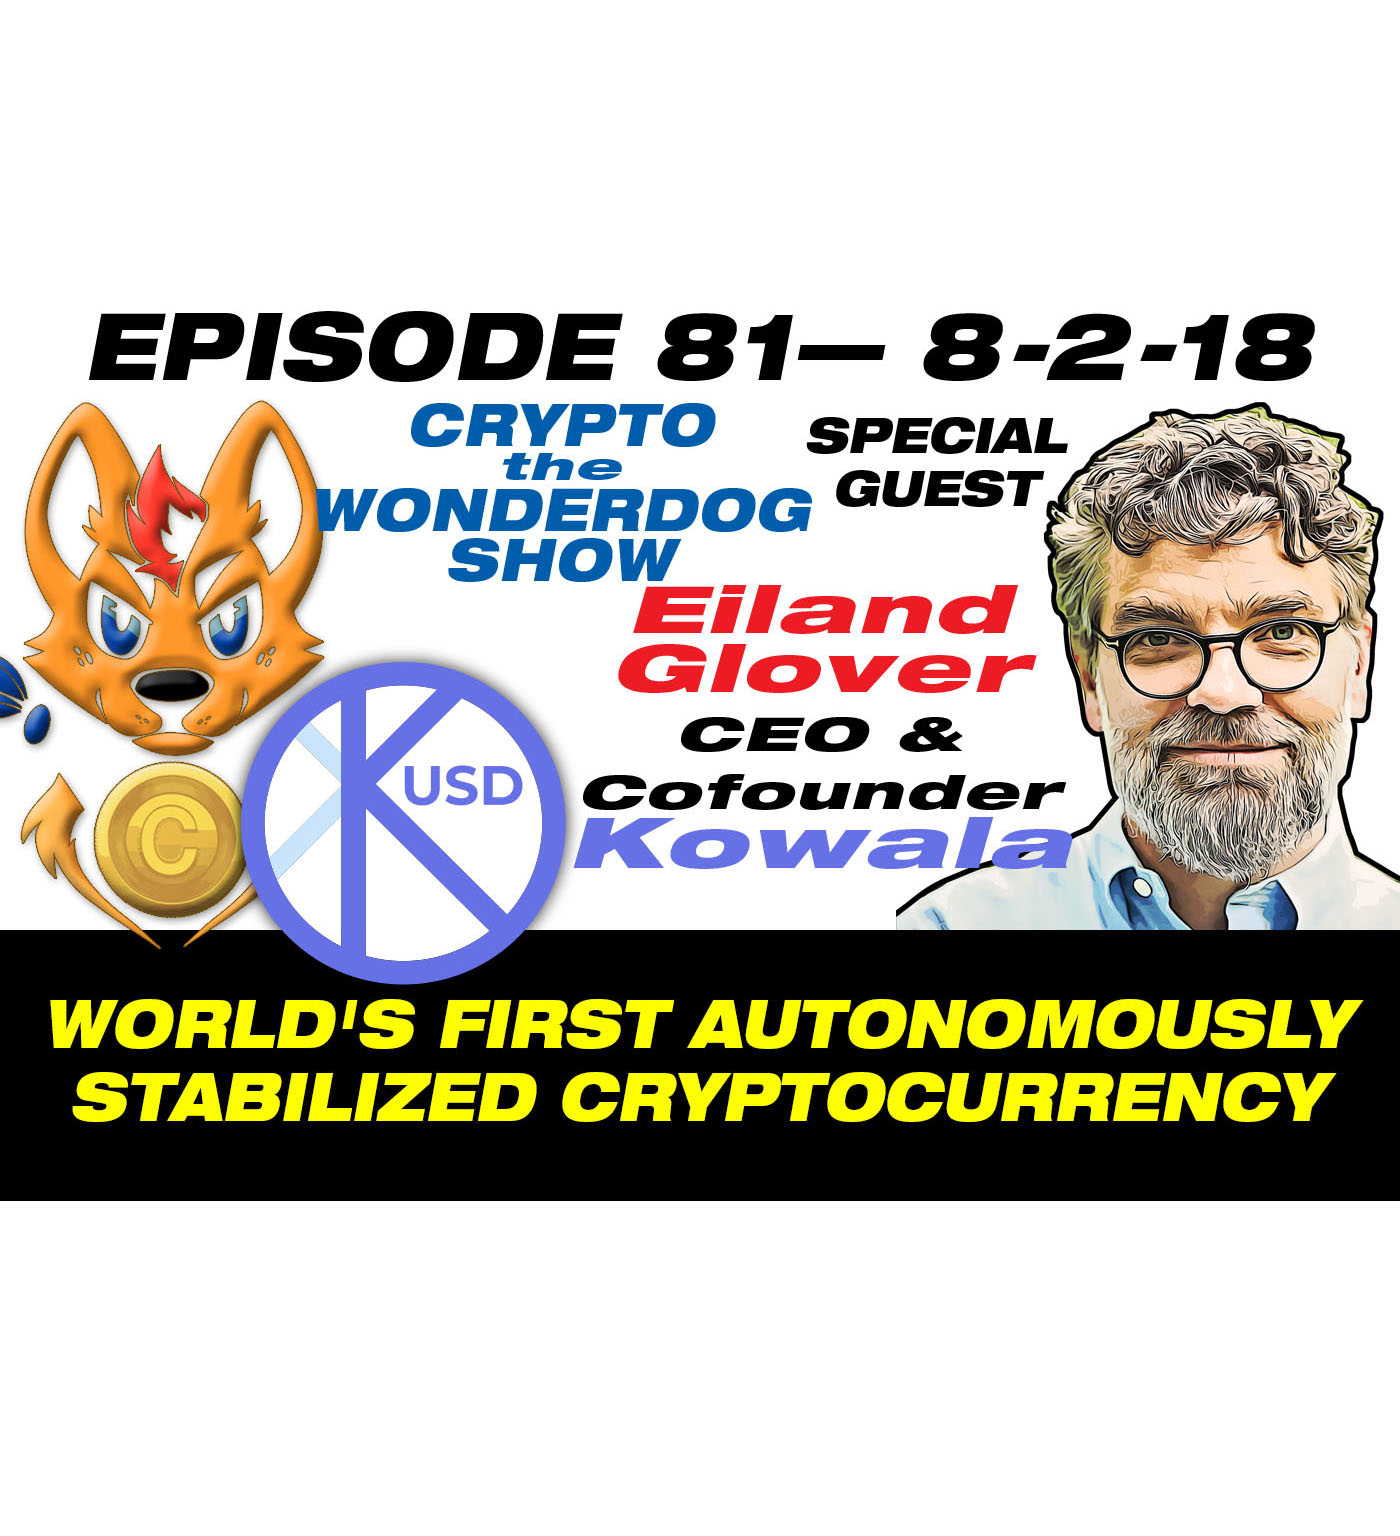 E 81 - Kowala - world's first autonomously stabilizing cryptocurrency - Eiland Glover - CEO and Cofounder of Kowala